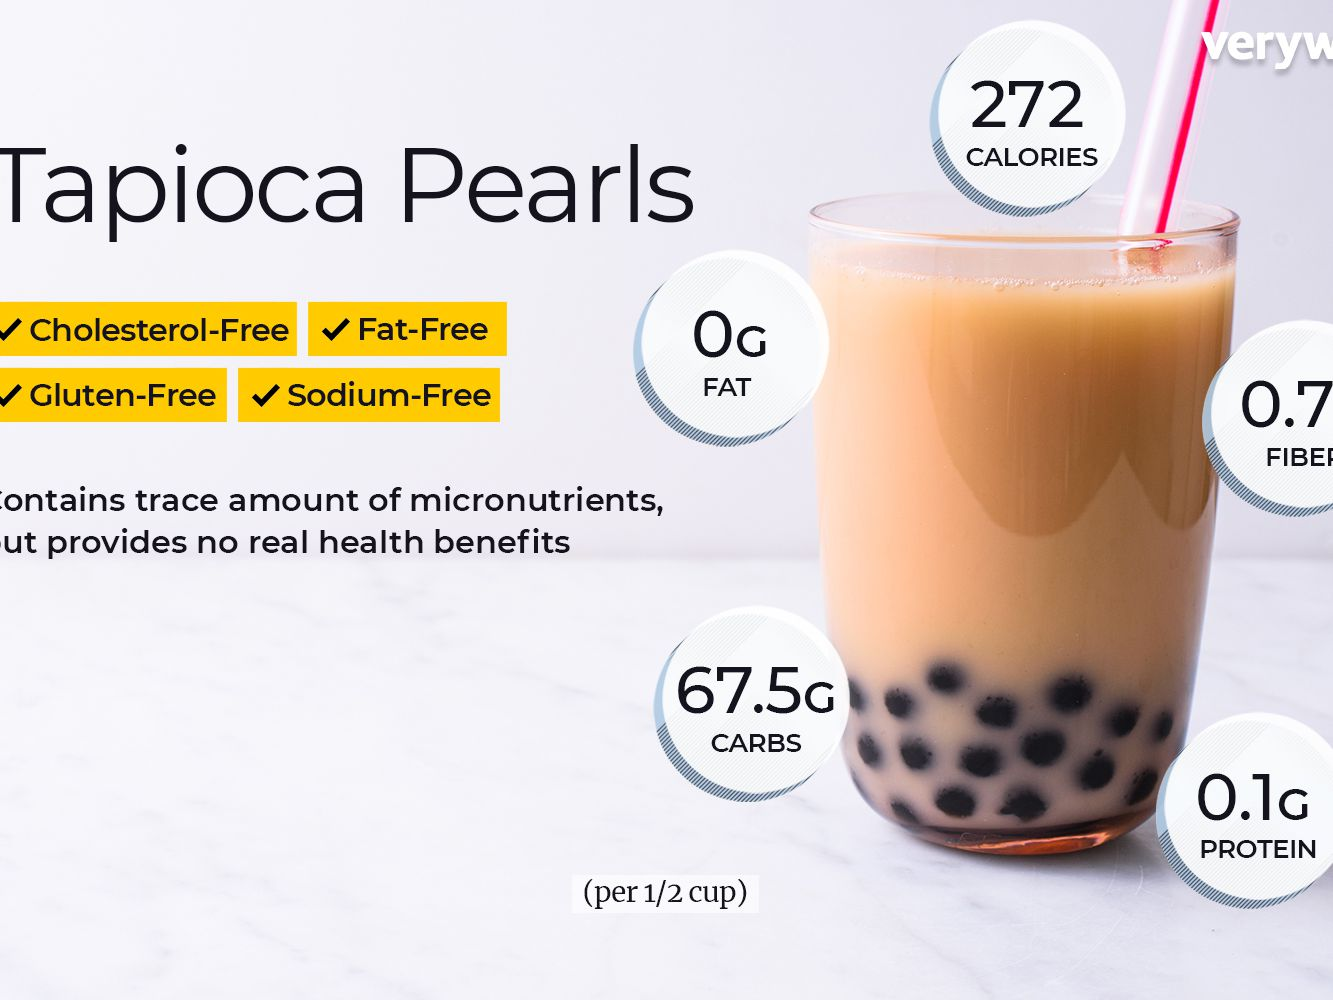 Boba Nutrition Facts Calories Carbs And Health Benefits